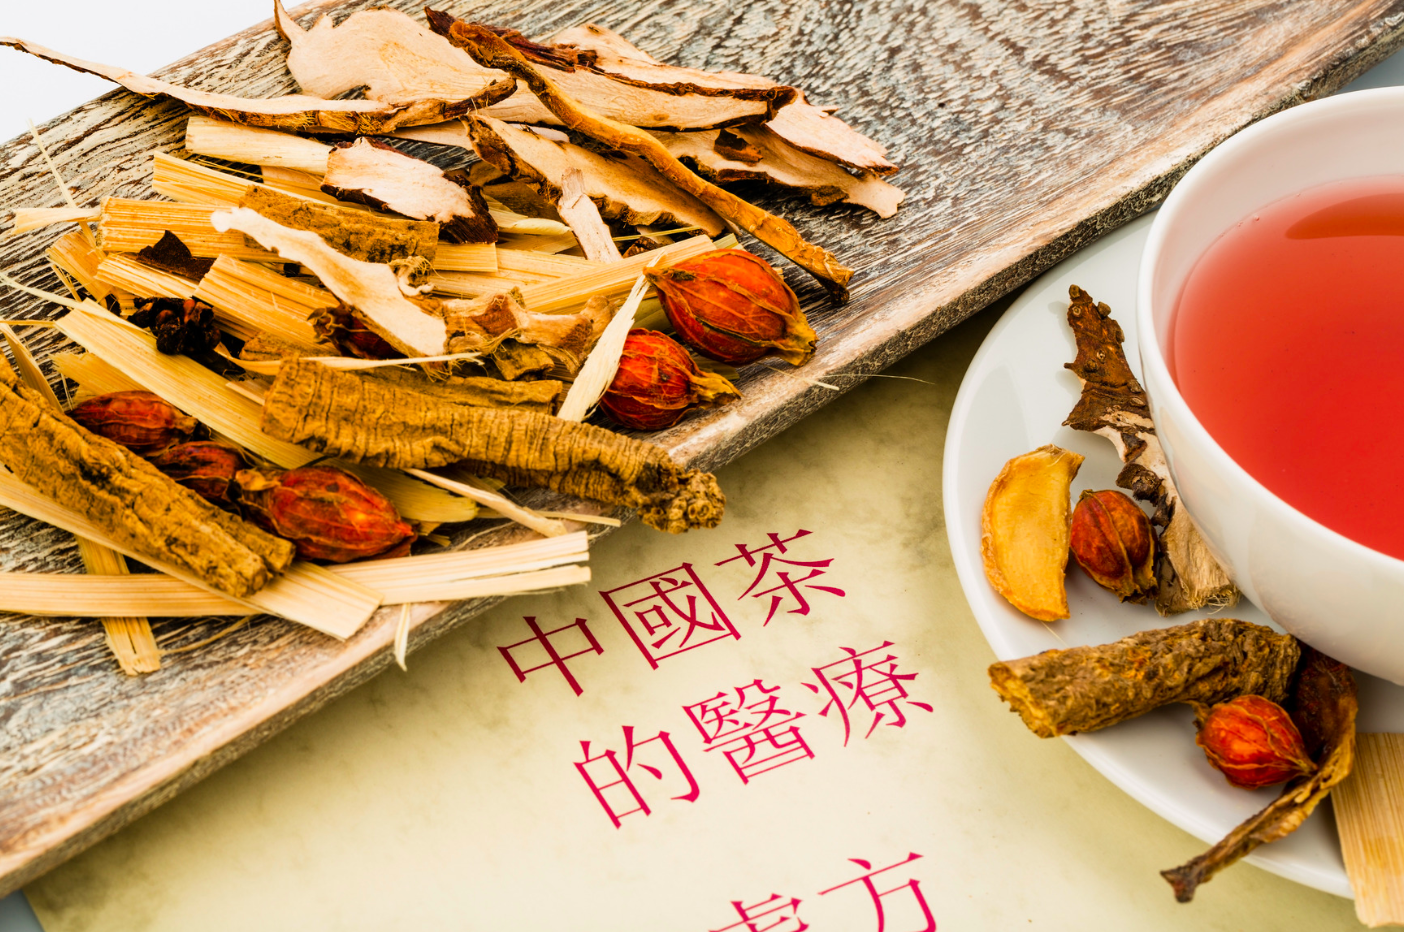 colorful Chinese herbs arrange artfully on table